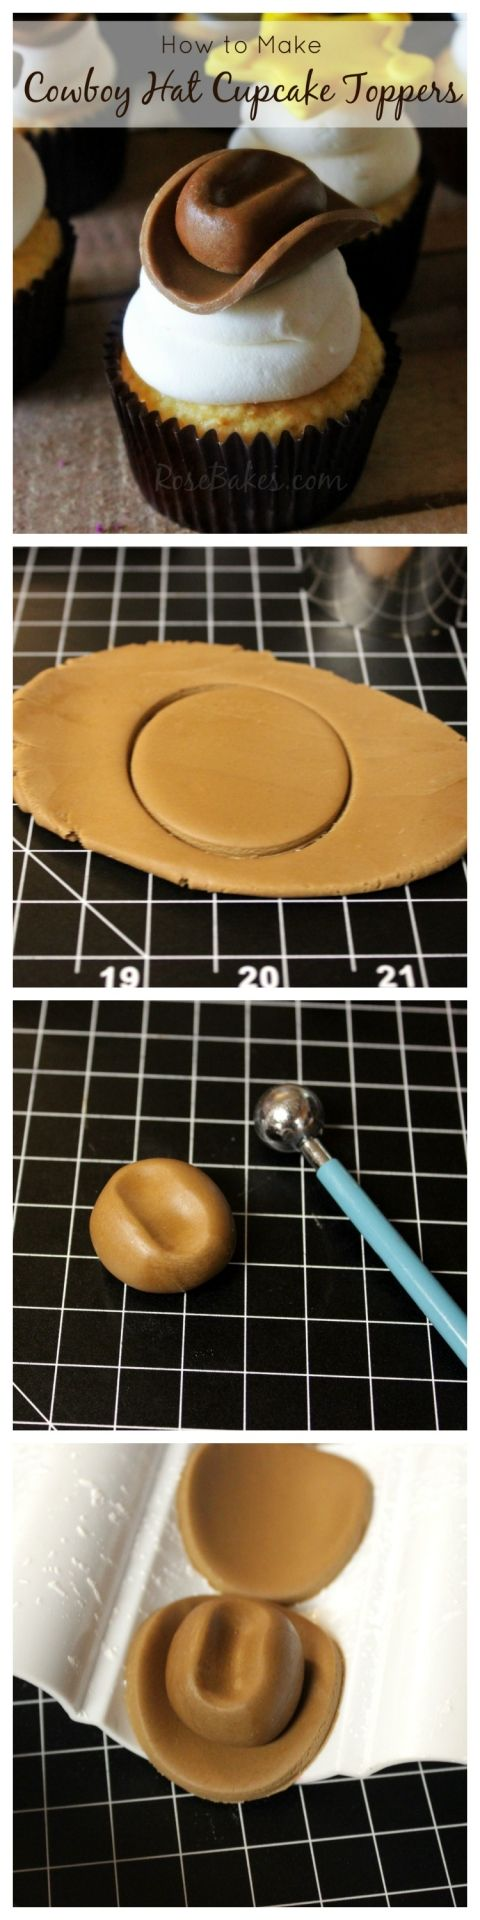 How to Make Cowboy Hat Cupcake Toppers Collage